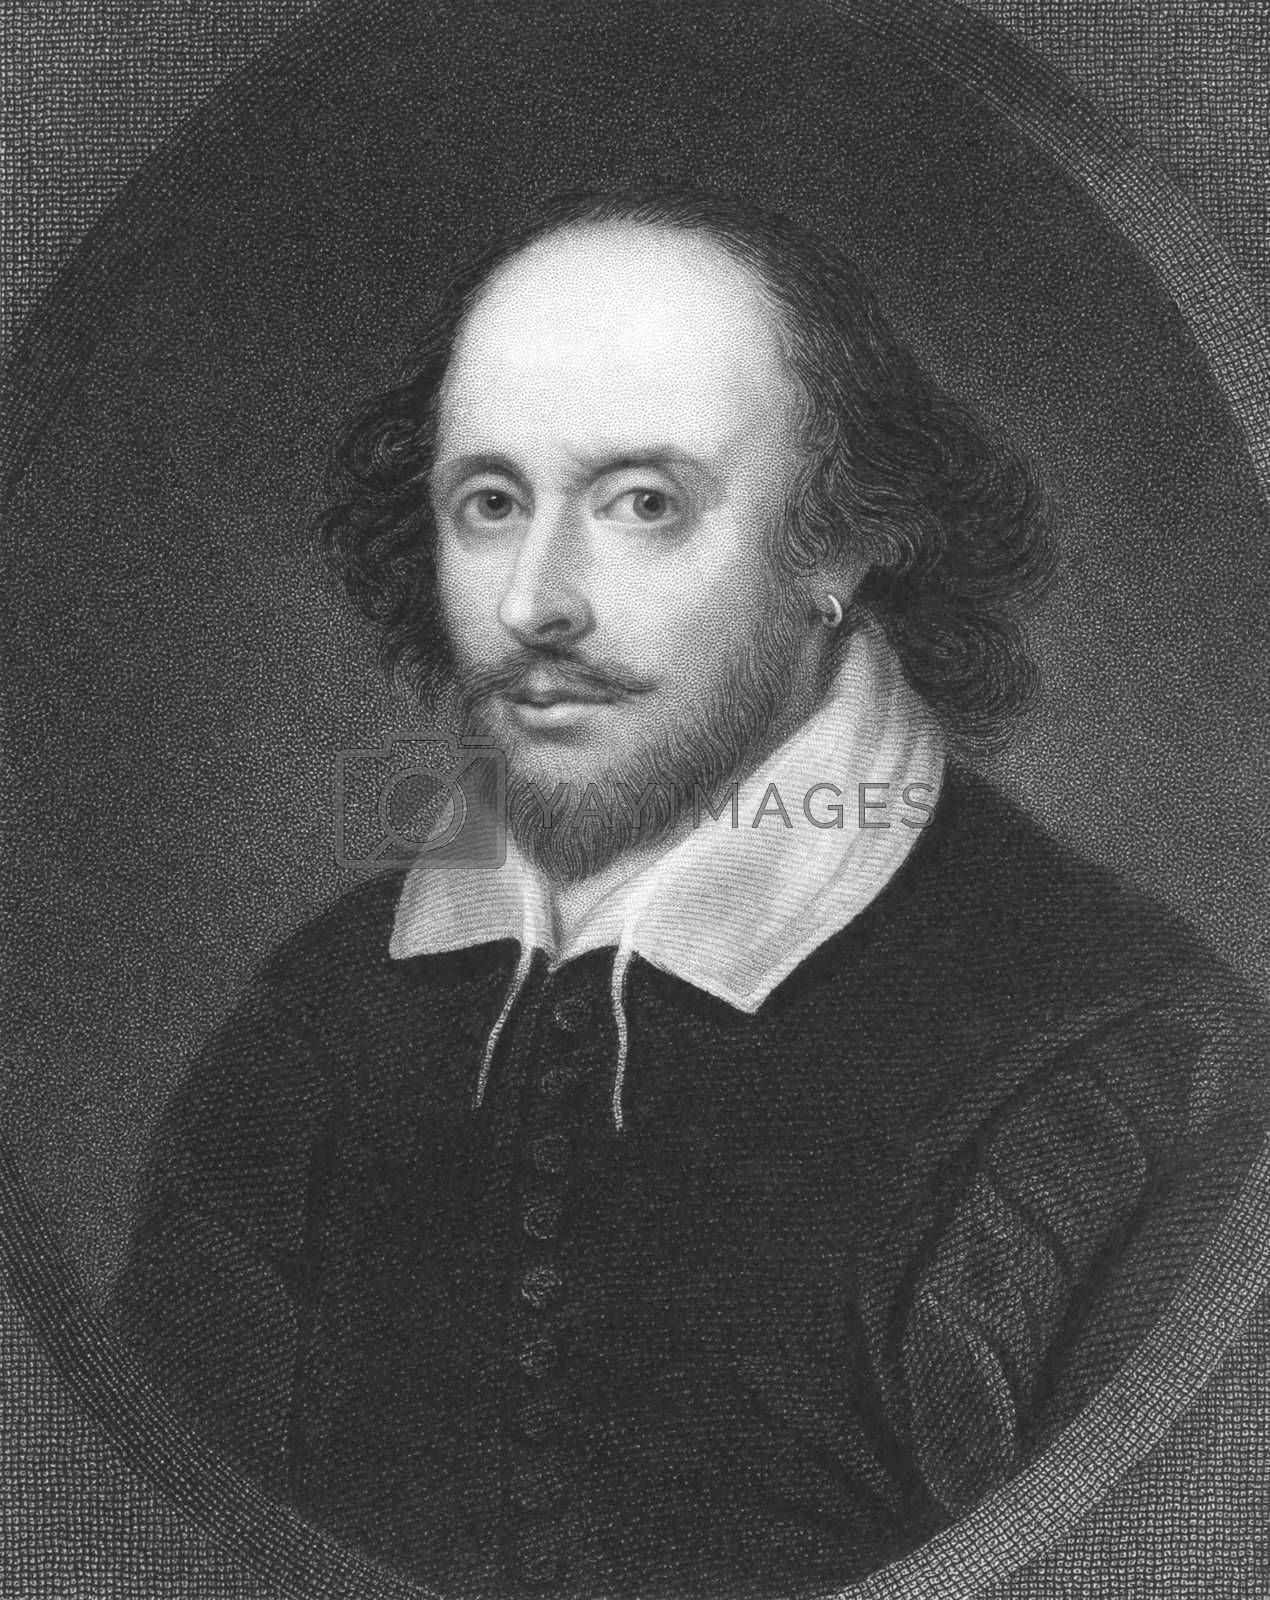 Royalty free image of William Shakespeare by Georgios